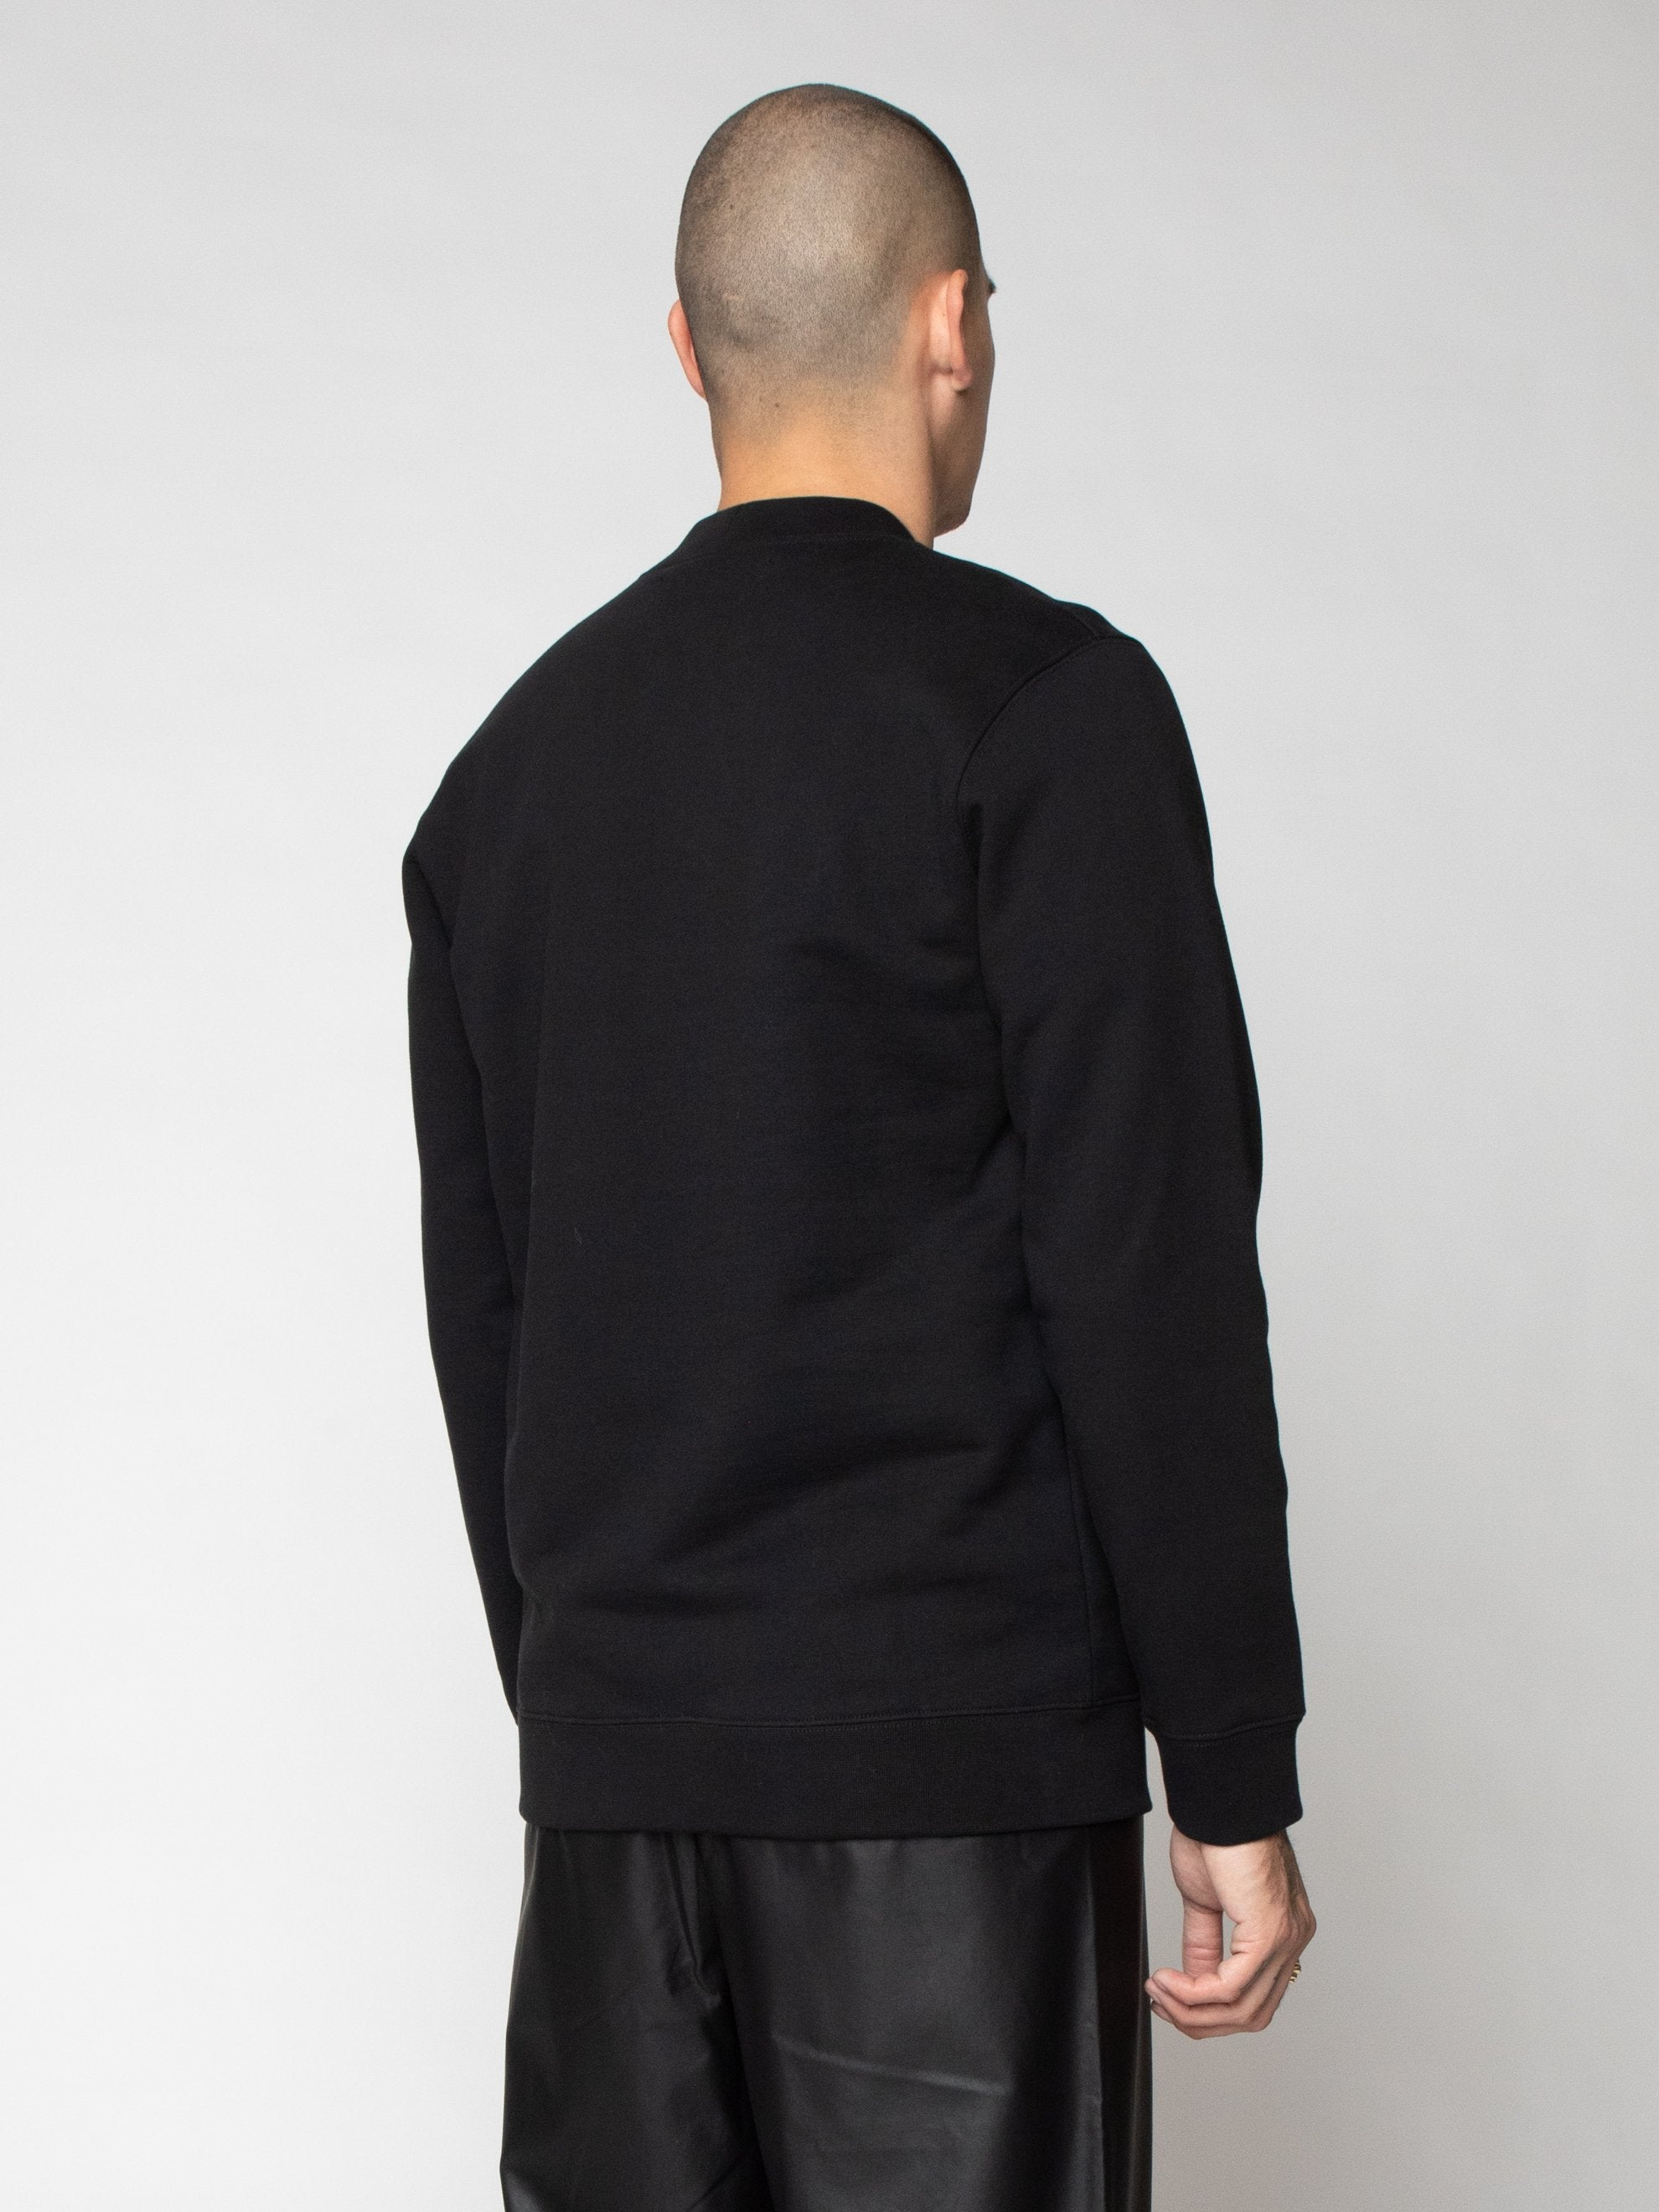 Black Basic Sweater With Sterling Patches 5